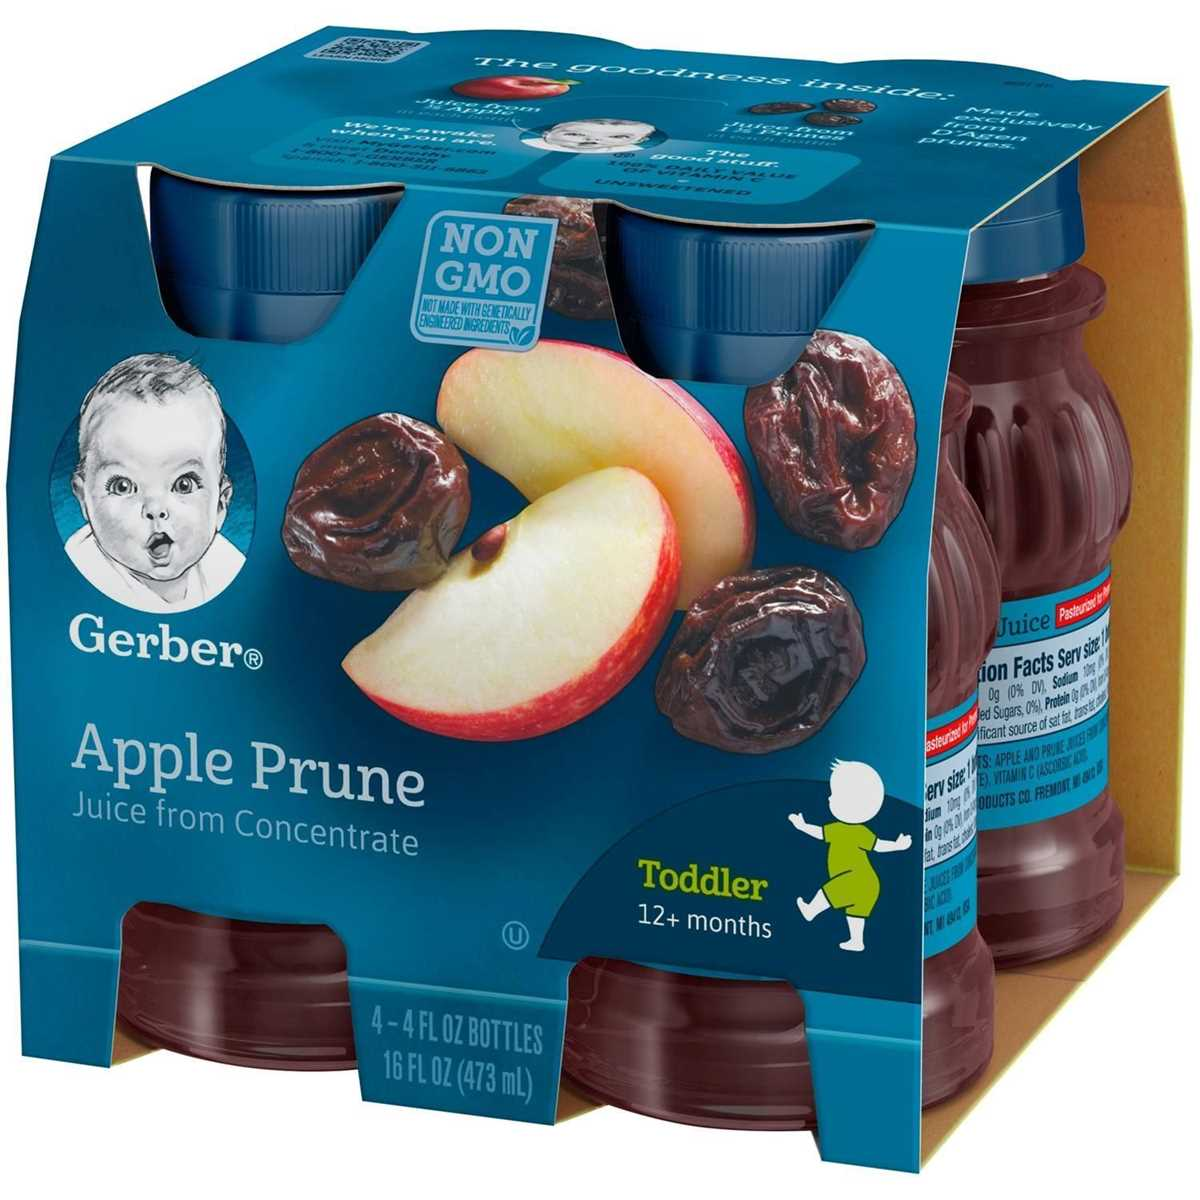 Gerber Juice 4Pk 473ml (16oz) - Apple Prune Juice